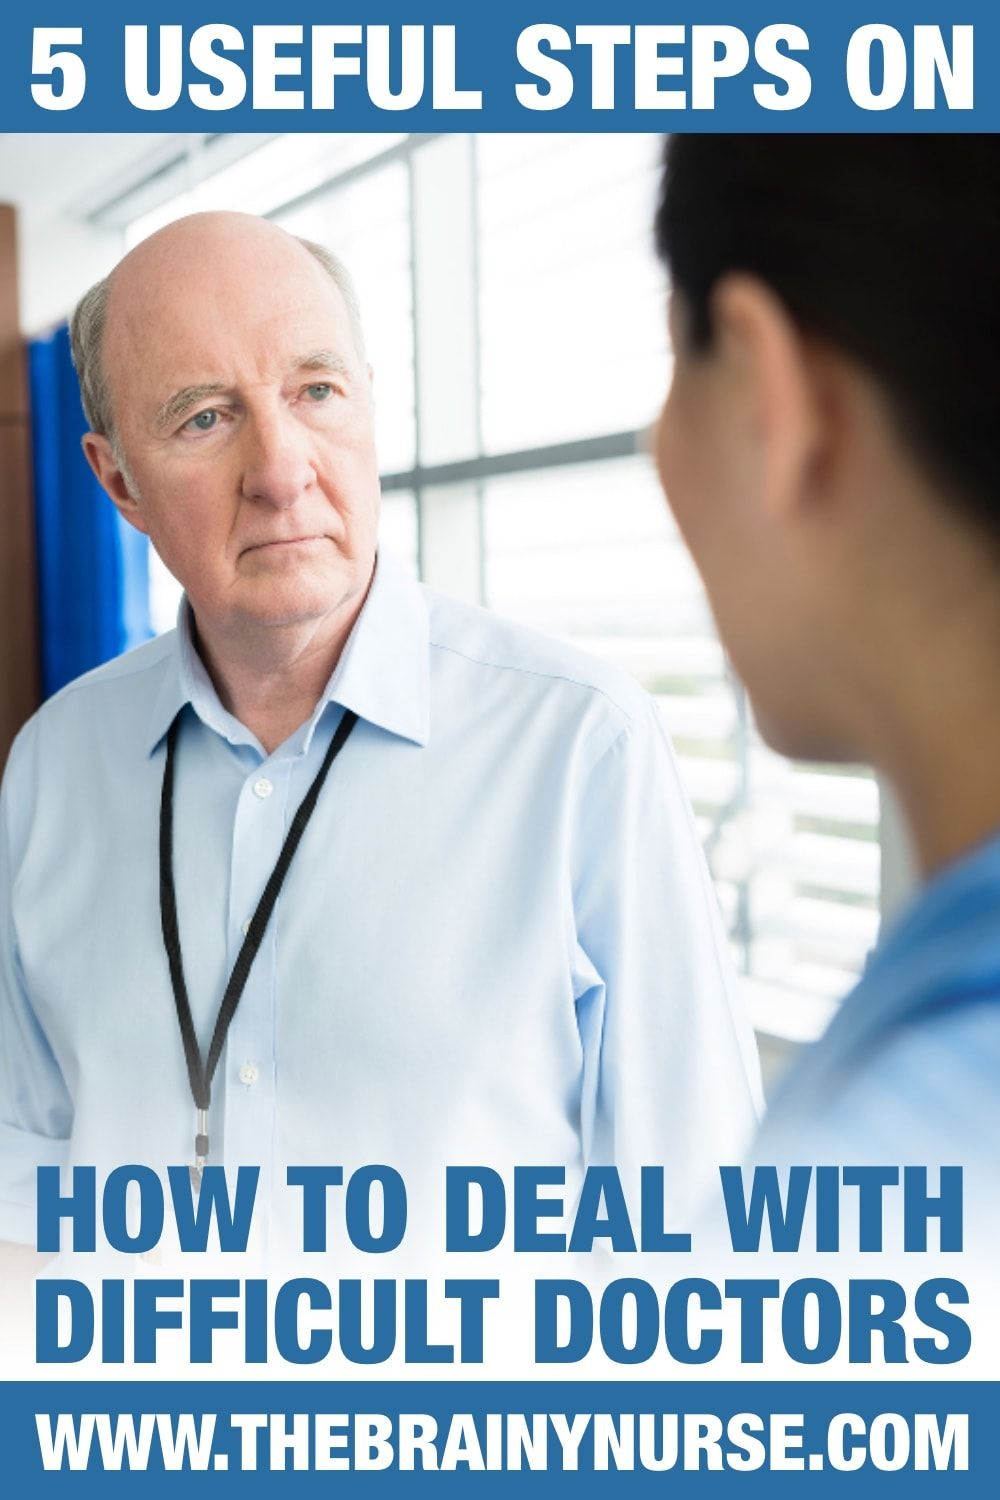 5 Useful Steps On How To Deal With Difficult Doctors